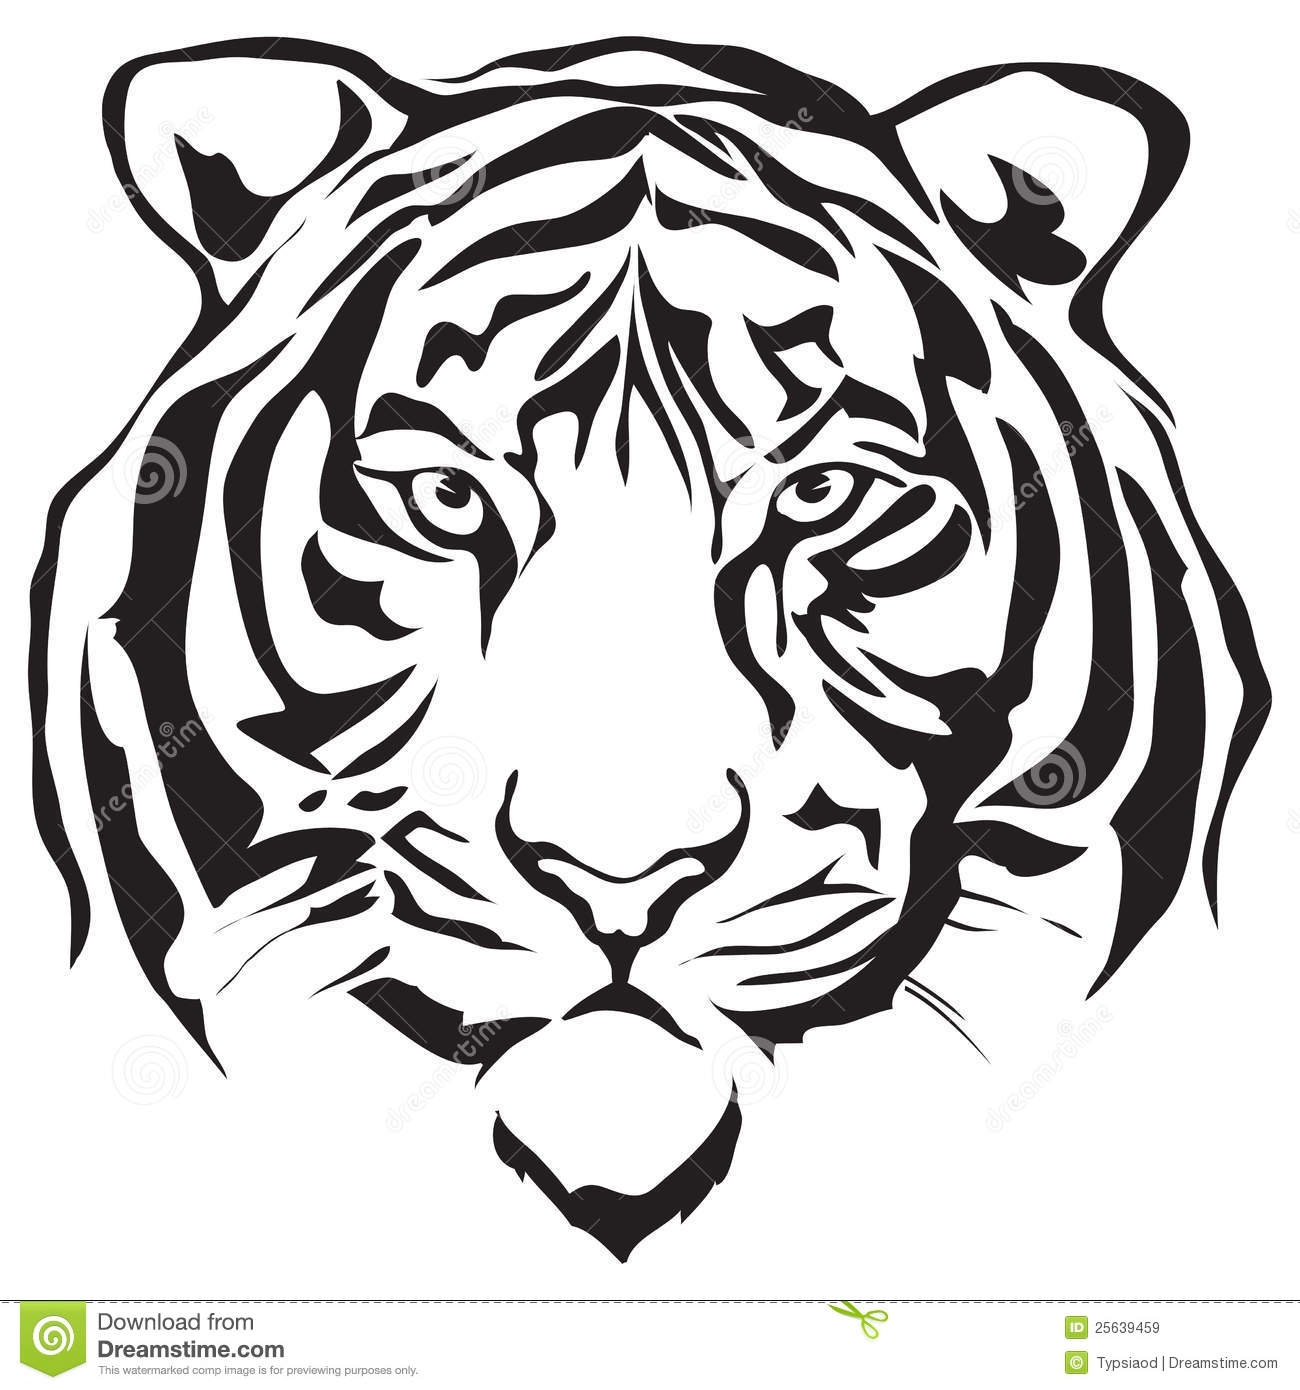 9+ Tiger Clipart Black And White.